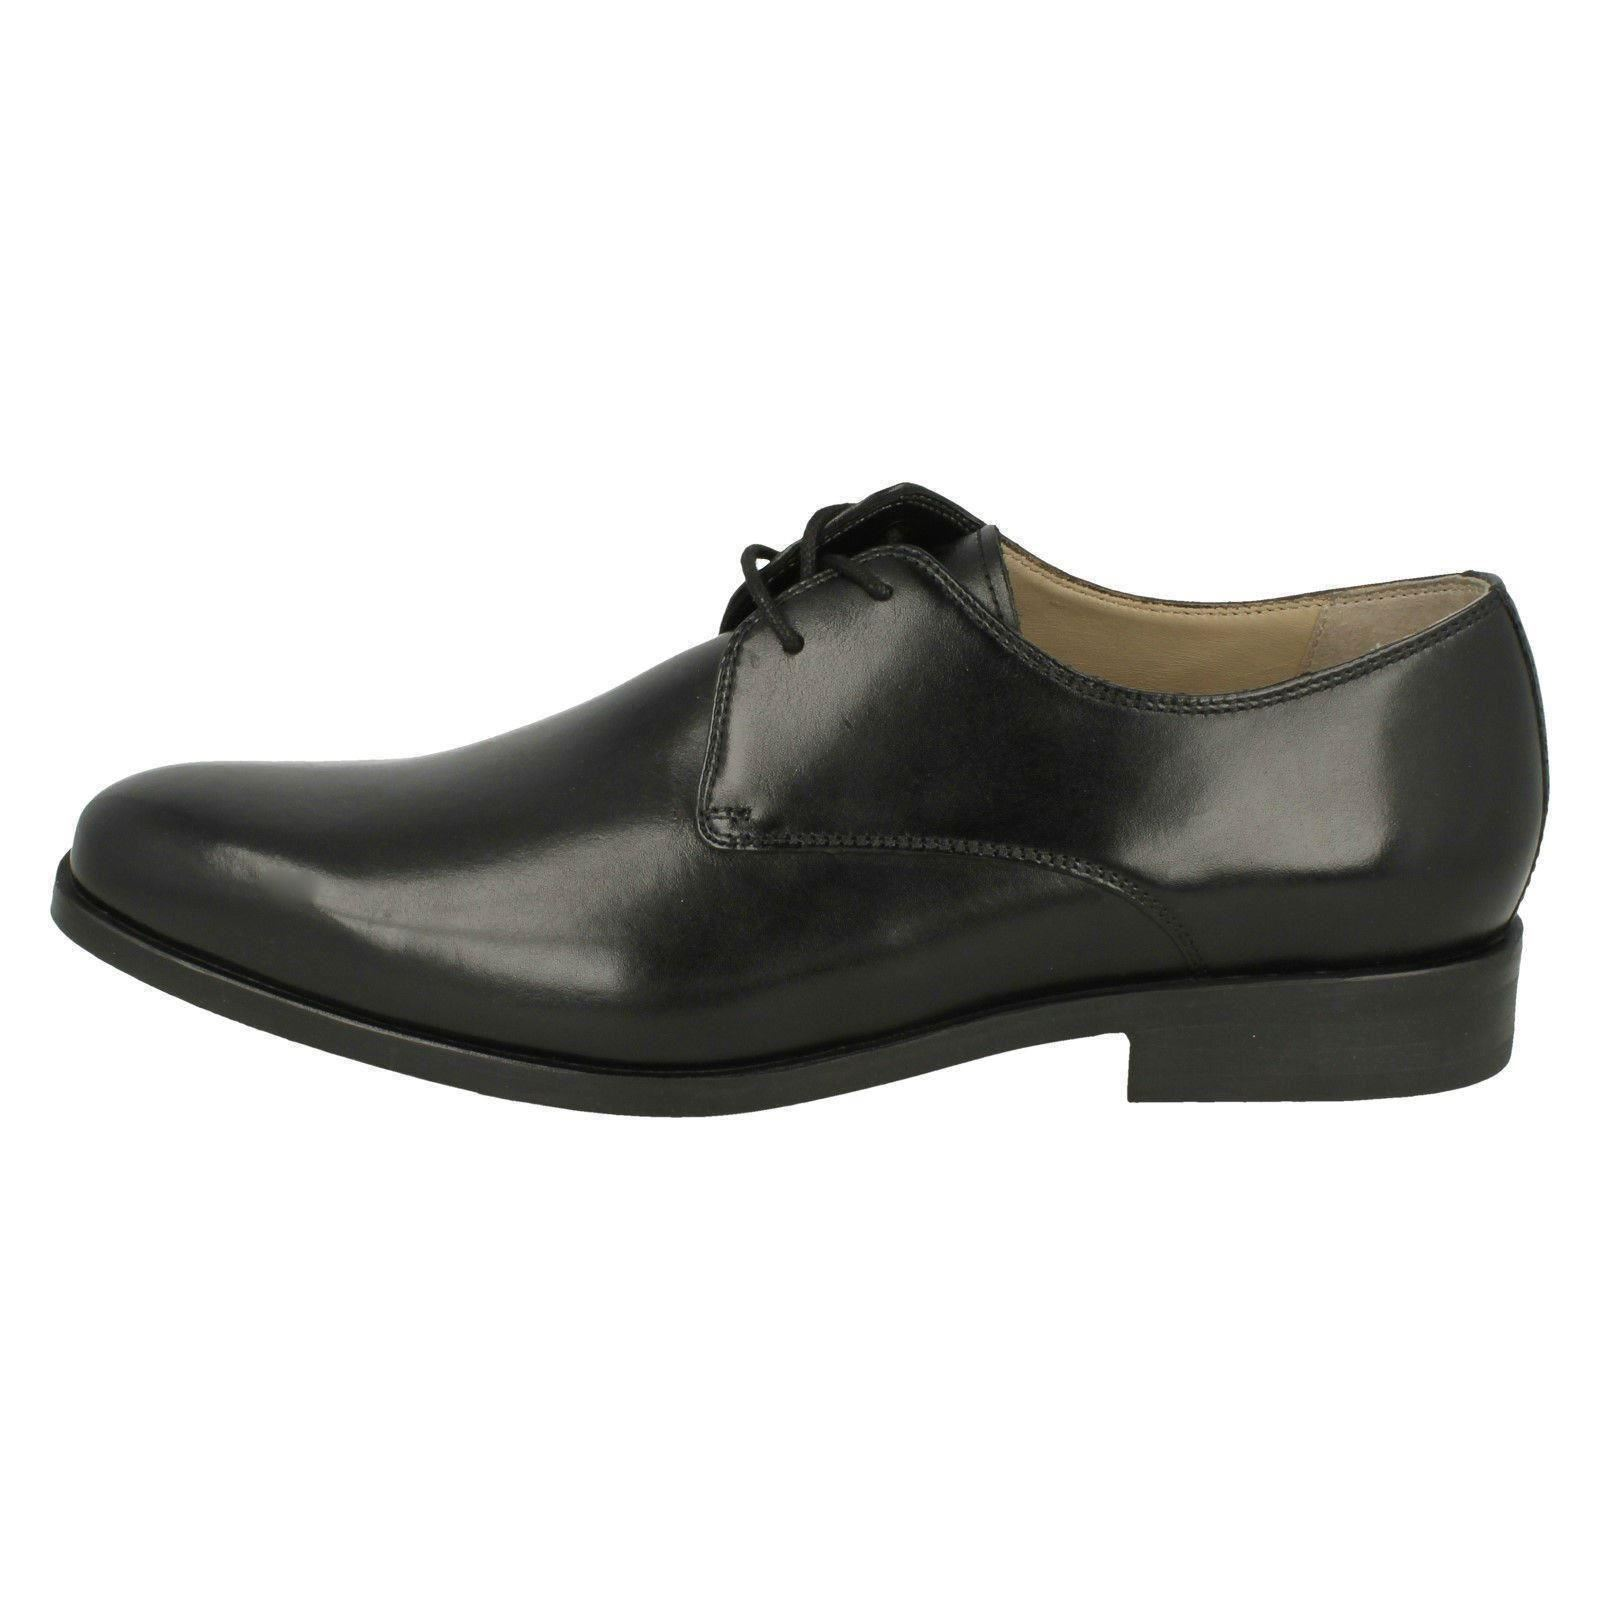 Men's Clarks Leather Lace Up Formal Shoes Walk The Style - Amieson Walk Shoes cc5217